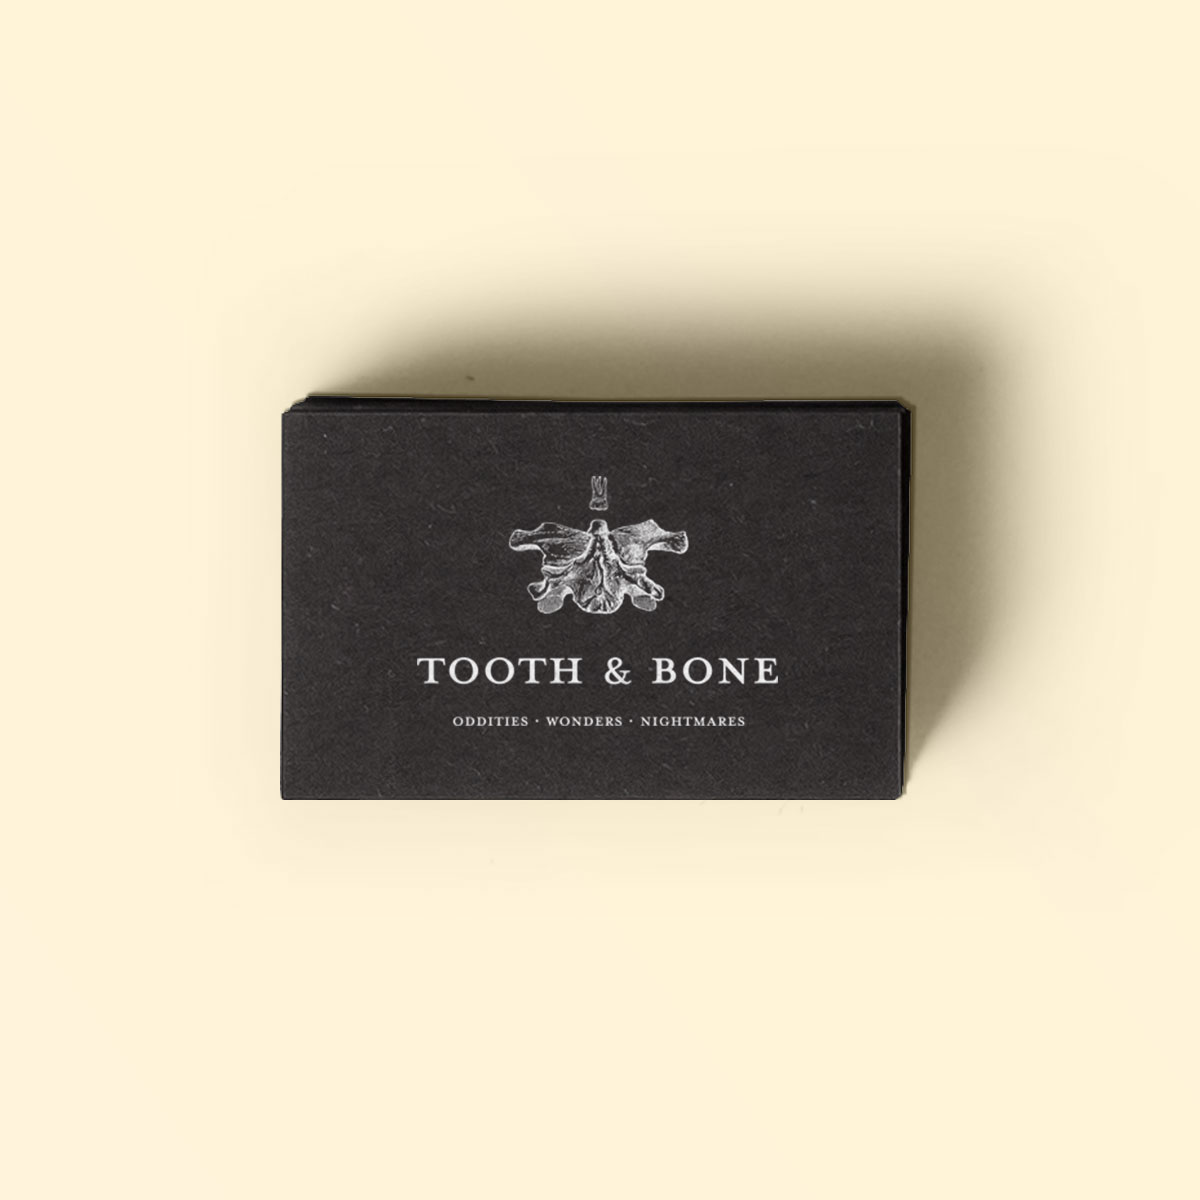 Tooth & Bone Brand Design